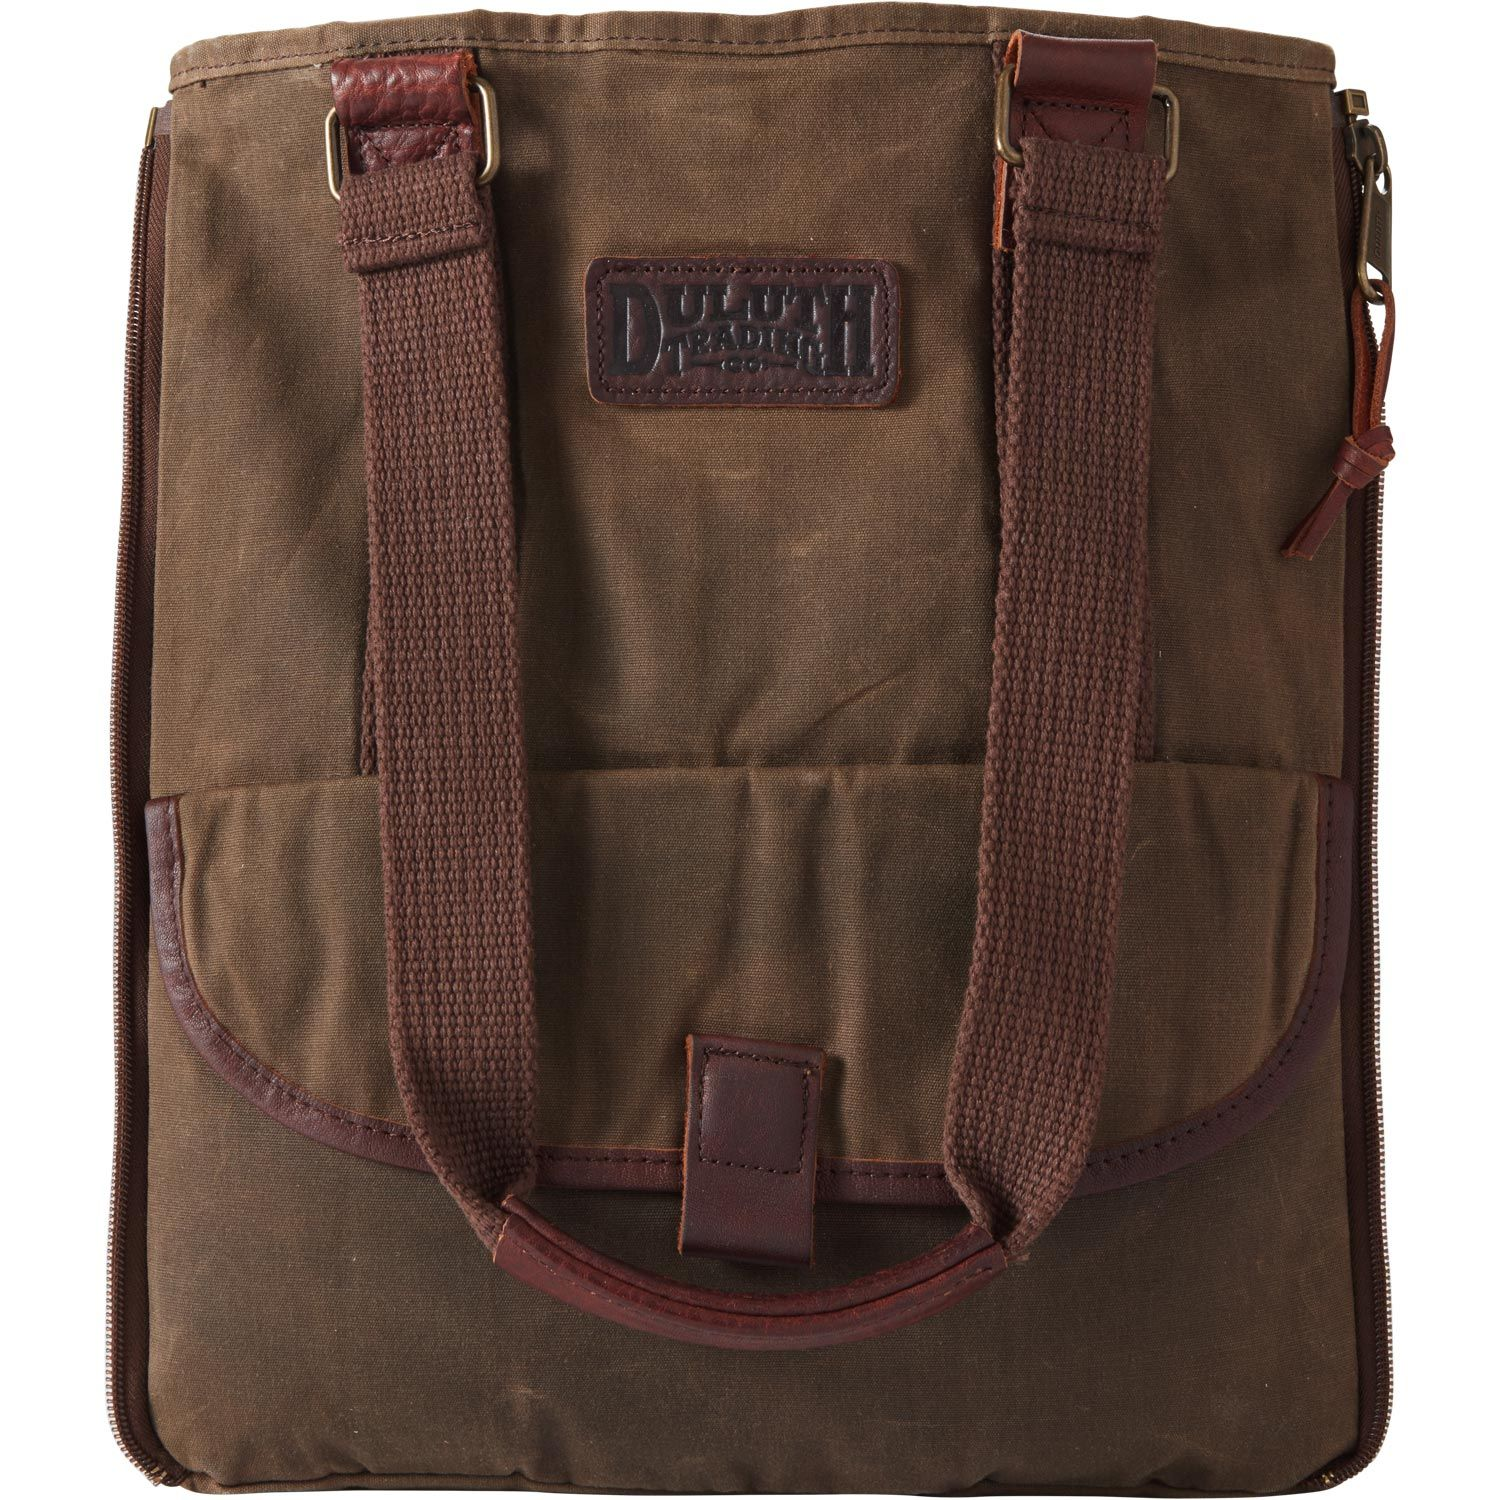 594940bc001 The Oil Cloth Day Tote Bag sheds moisture, resists stains and organizes  essentials in a plethora of pockets. Zippered gussets expand to handle  anything!